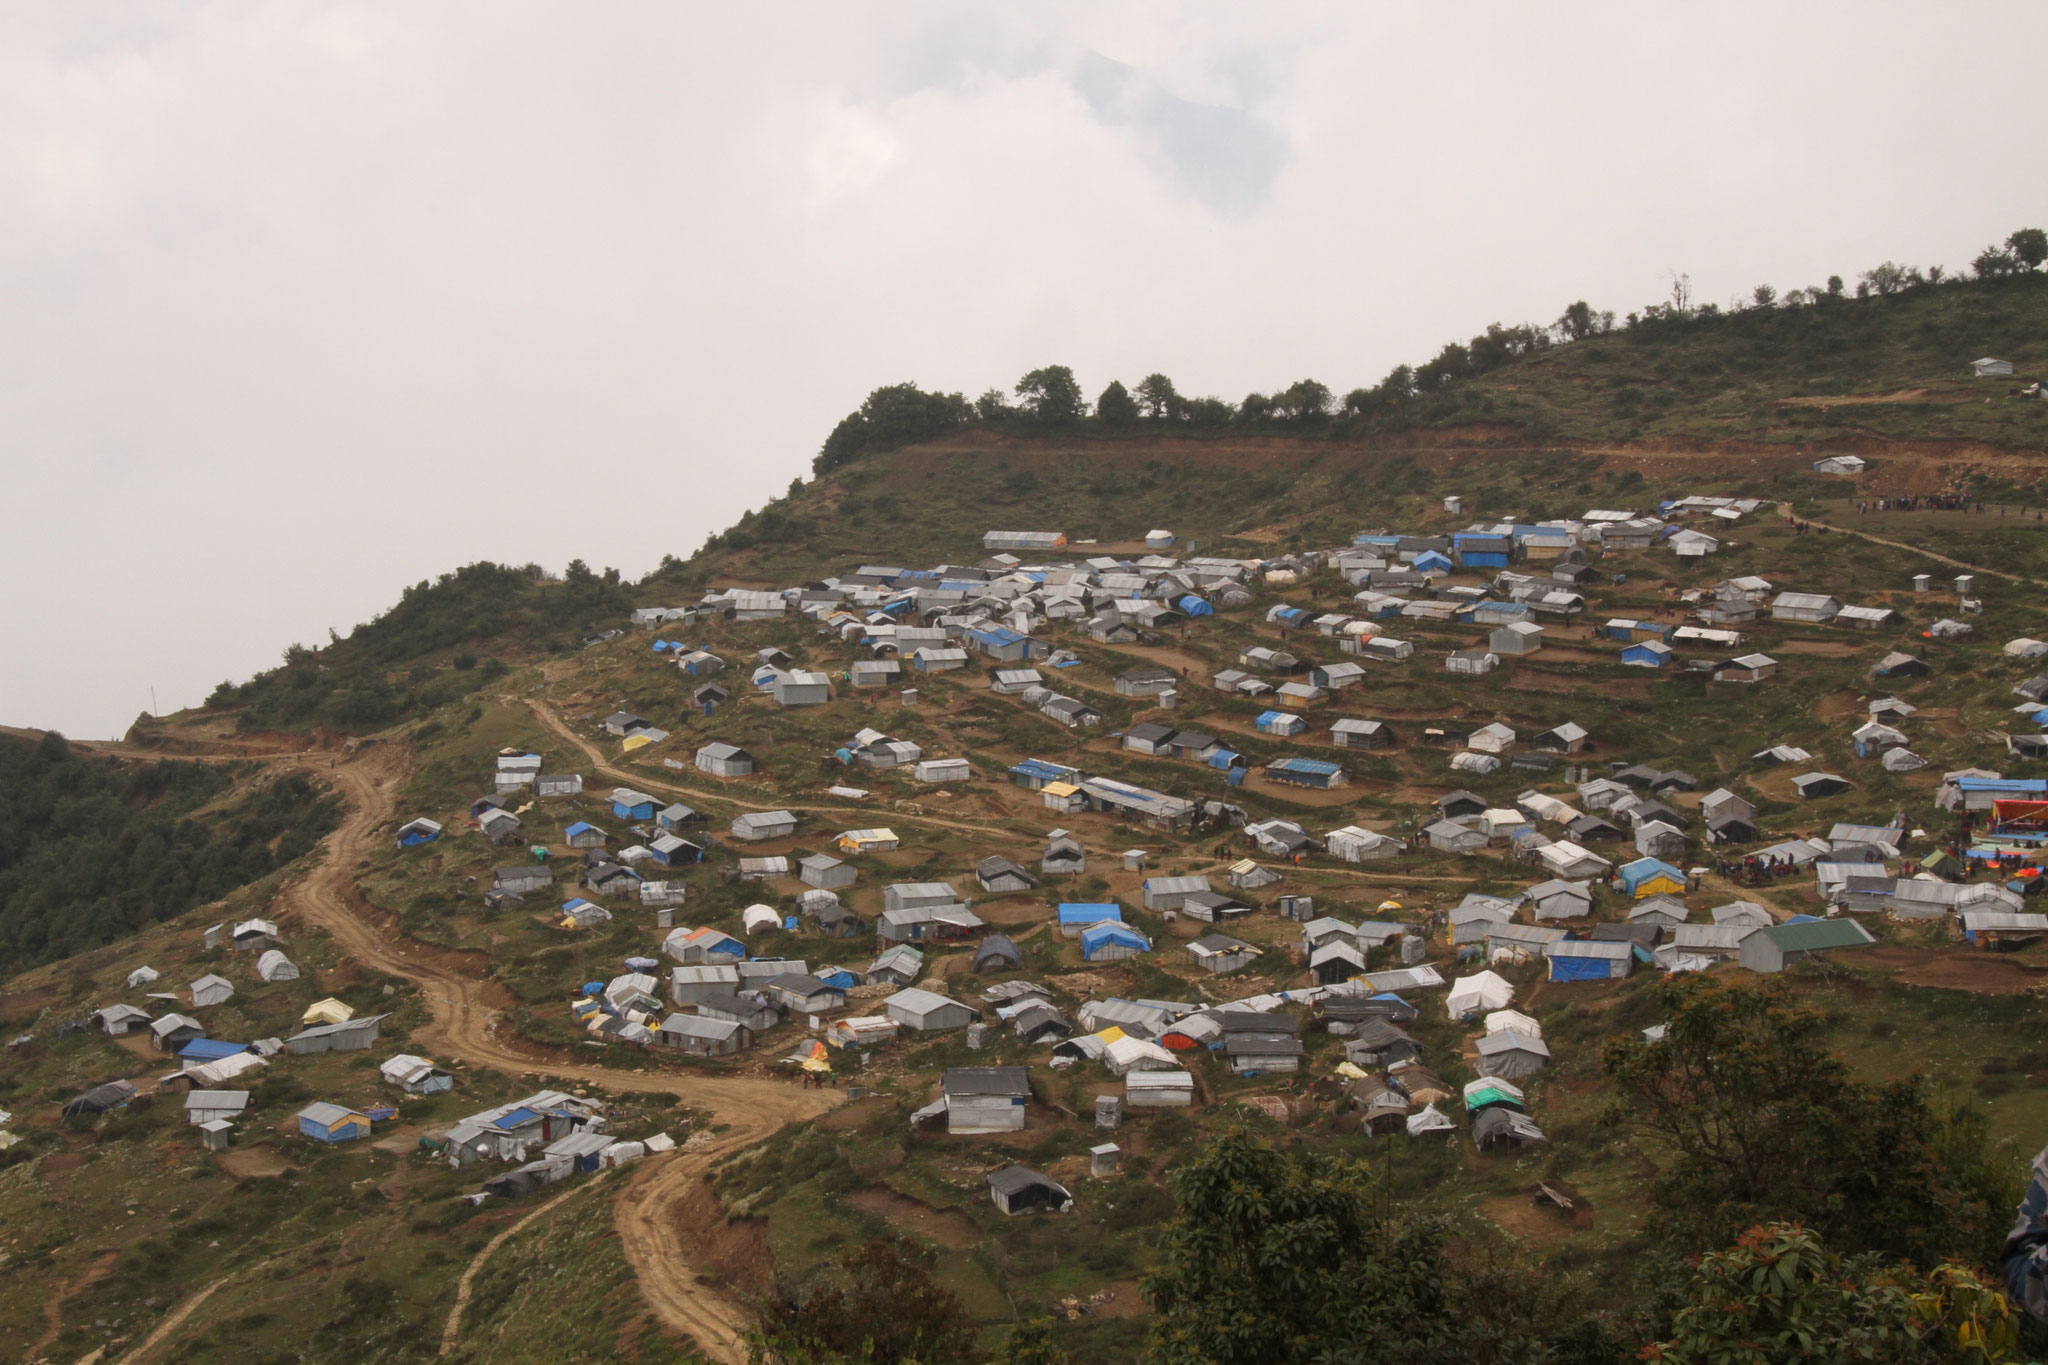 a new village - a result of the earthquake